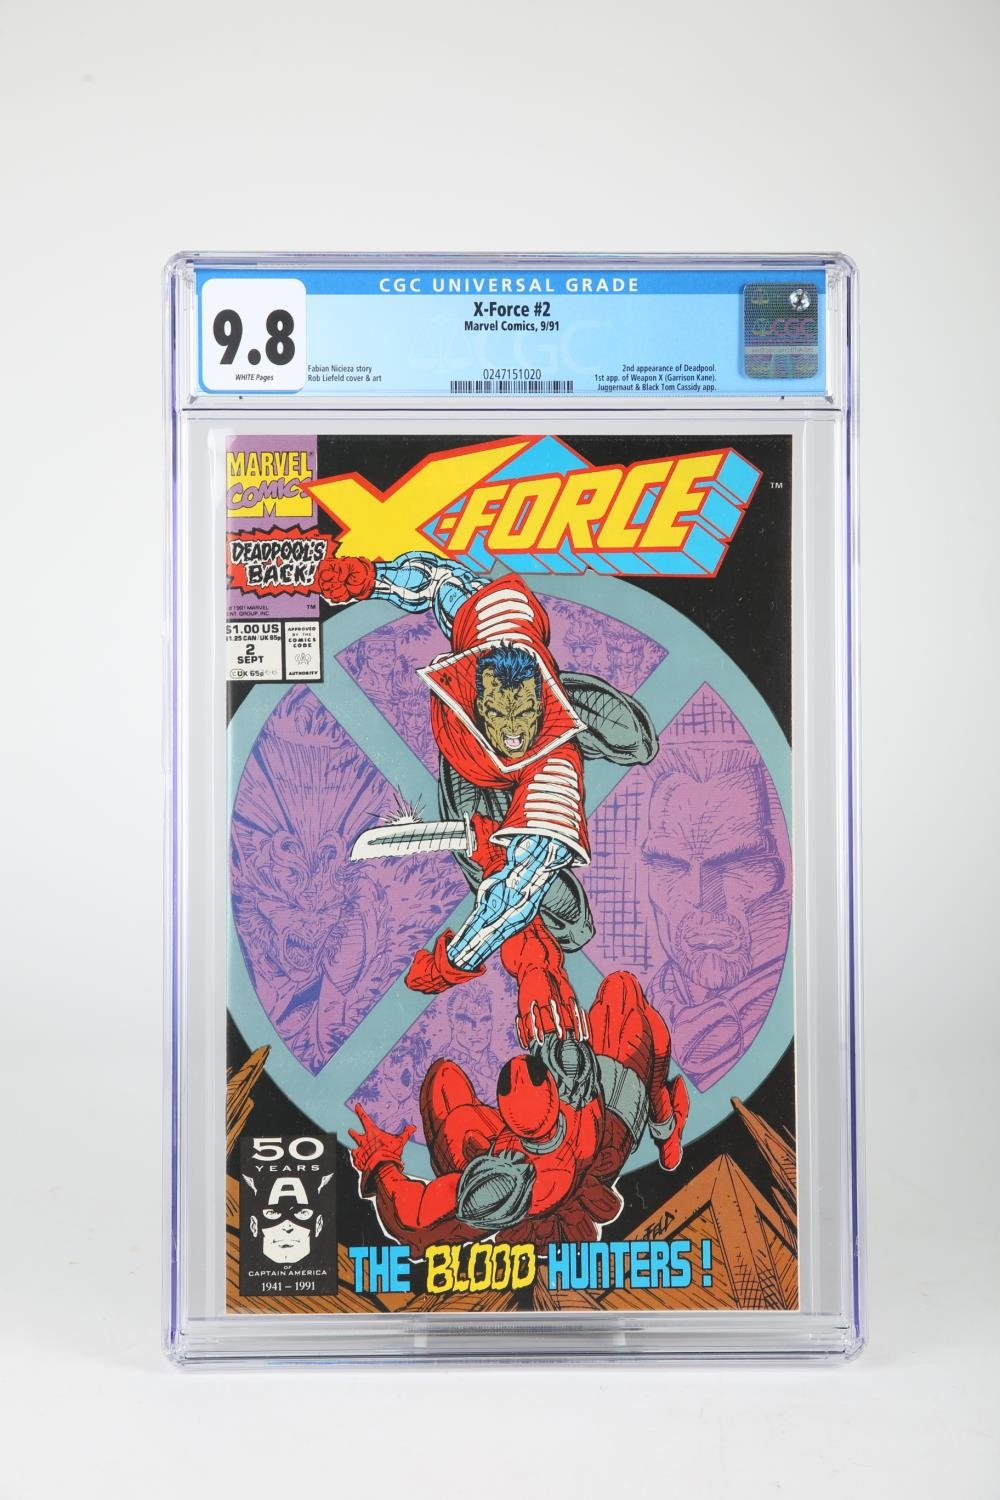 Comics, X-Force #2 & #11 and X-Factor #6, (Marvel, 1986-1991) X-Force #2 CGC certified and graded